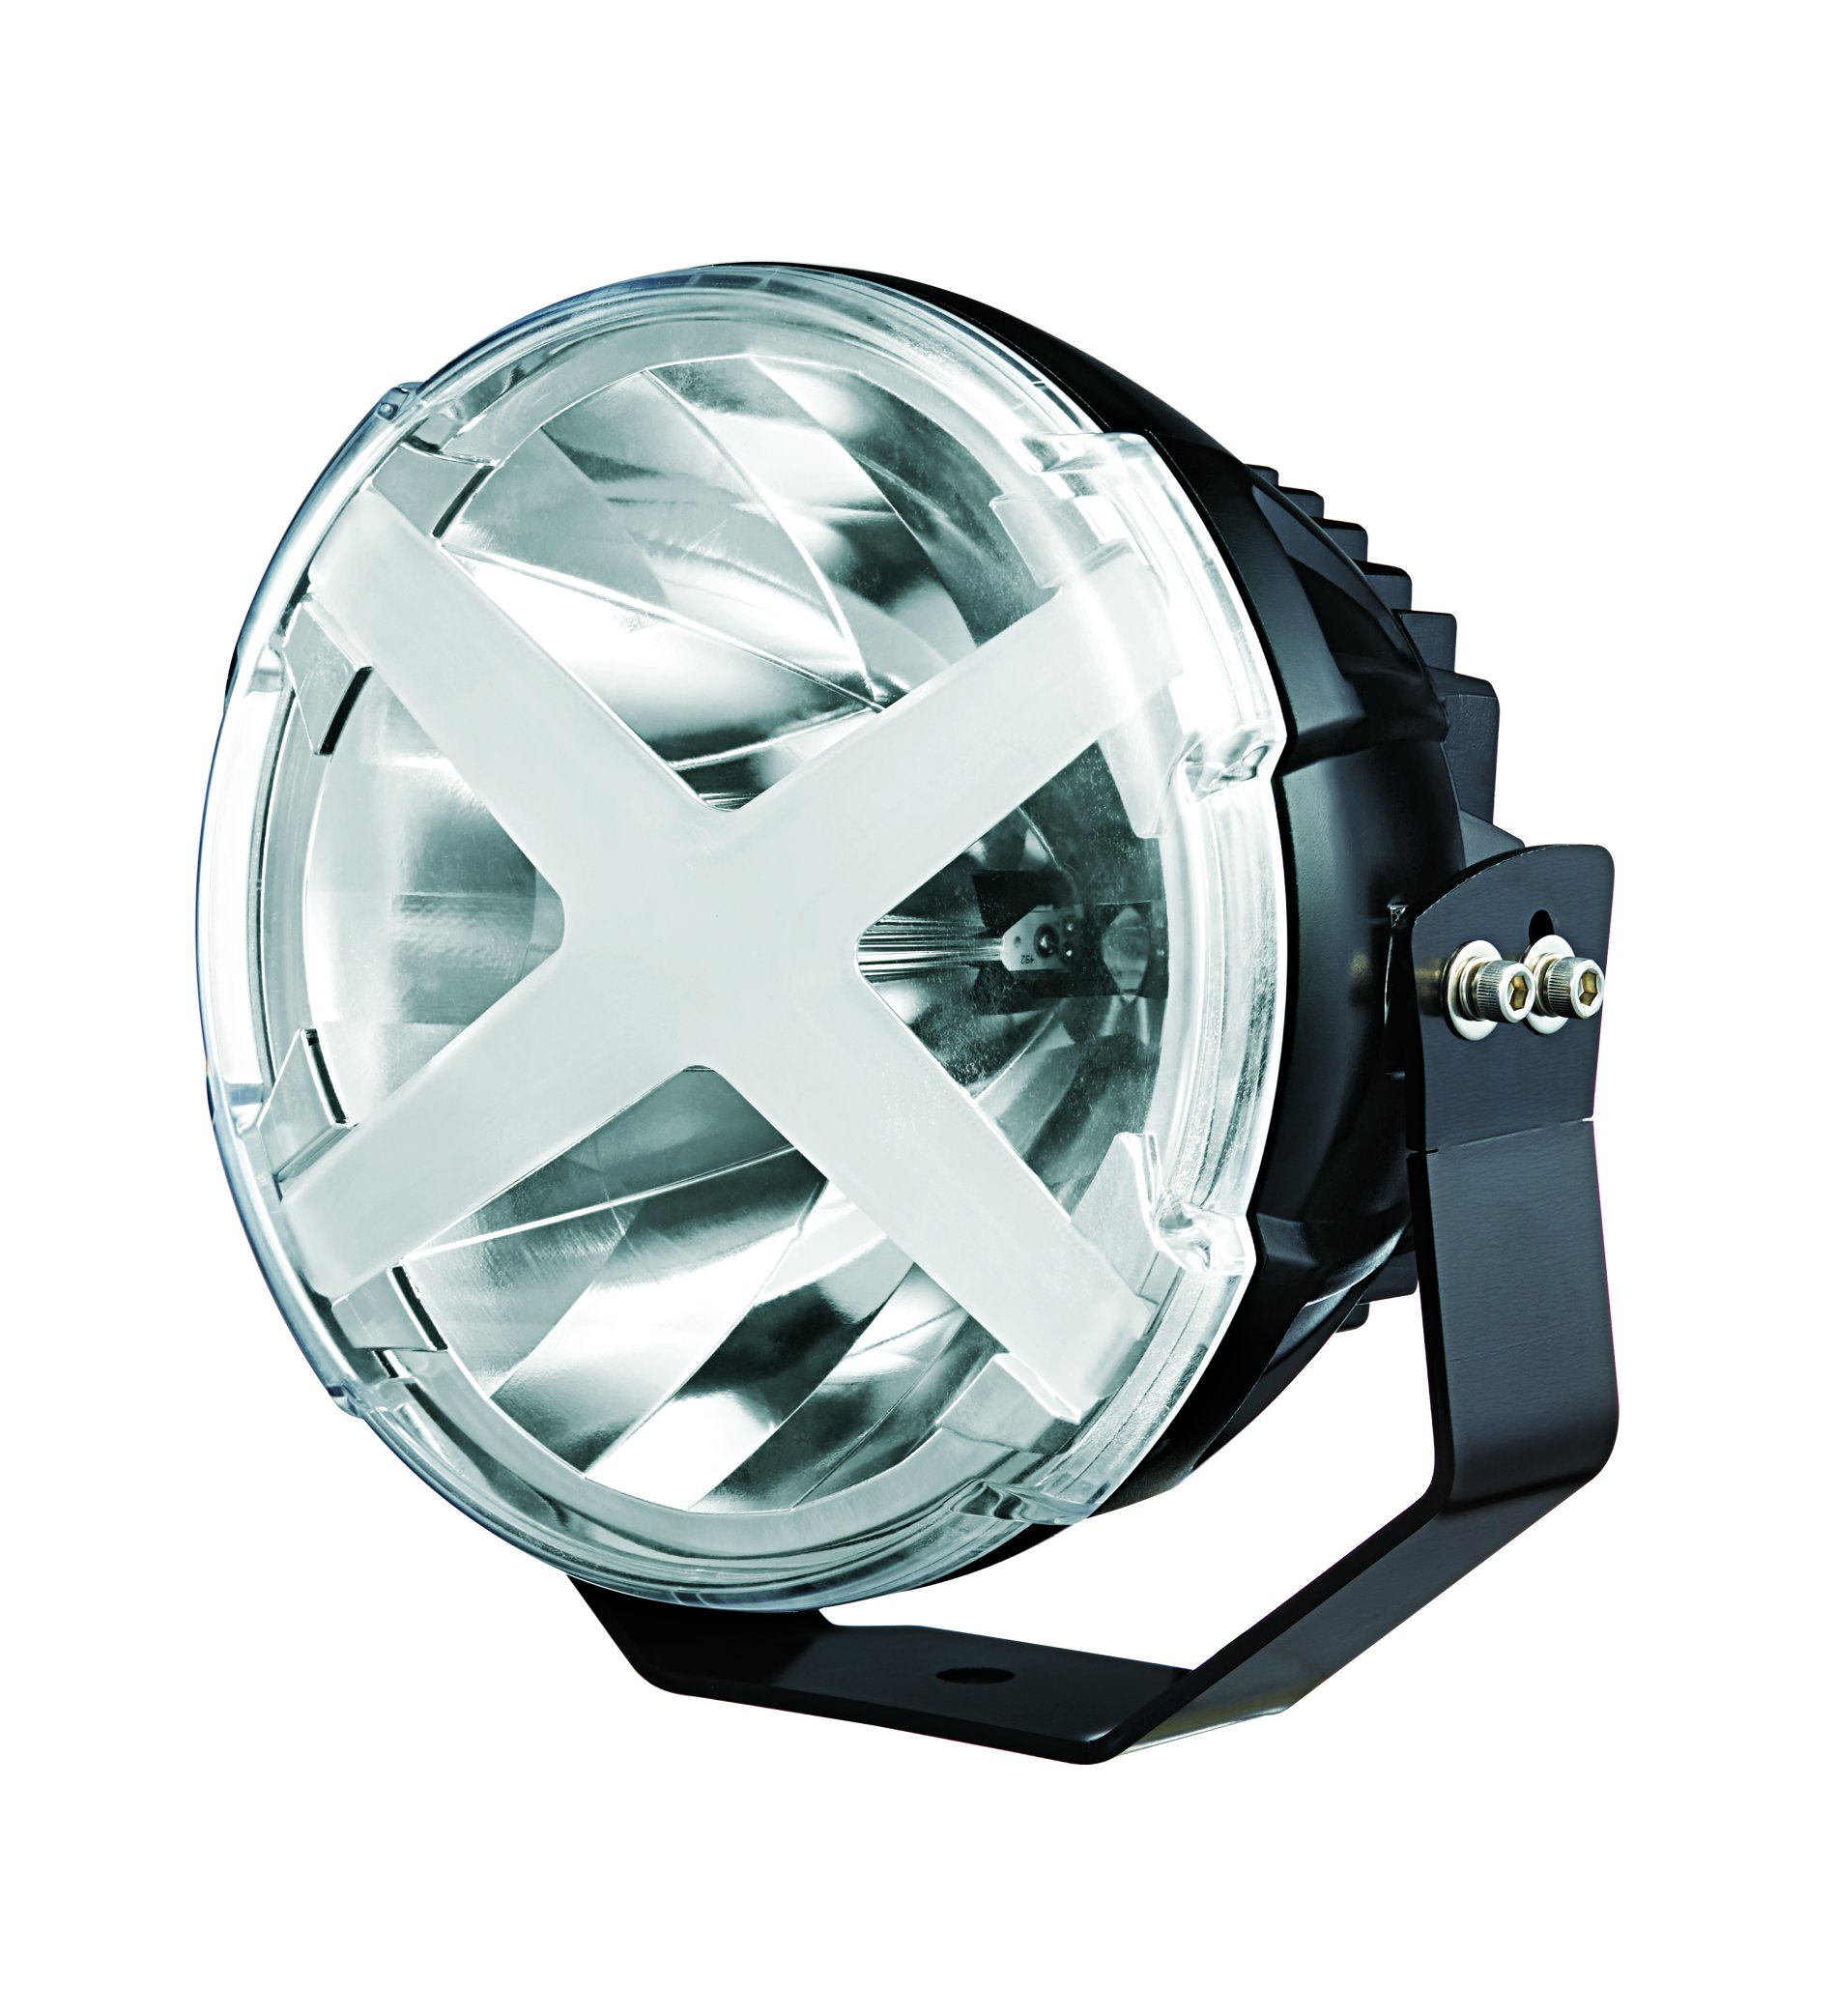 4x4 Pick Up LED Driving Lamp for Lighting Series made by NIKEN Vehicle Lighting Co., LTD. 首通股份有限公司 - MatchSupplier.com